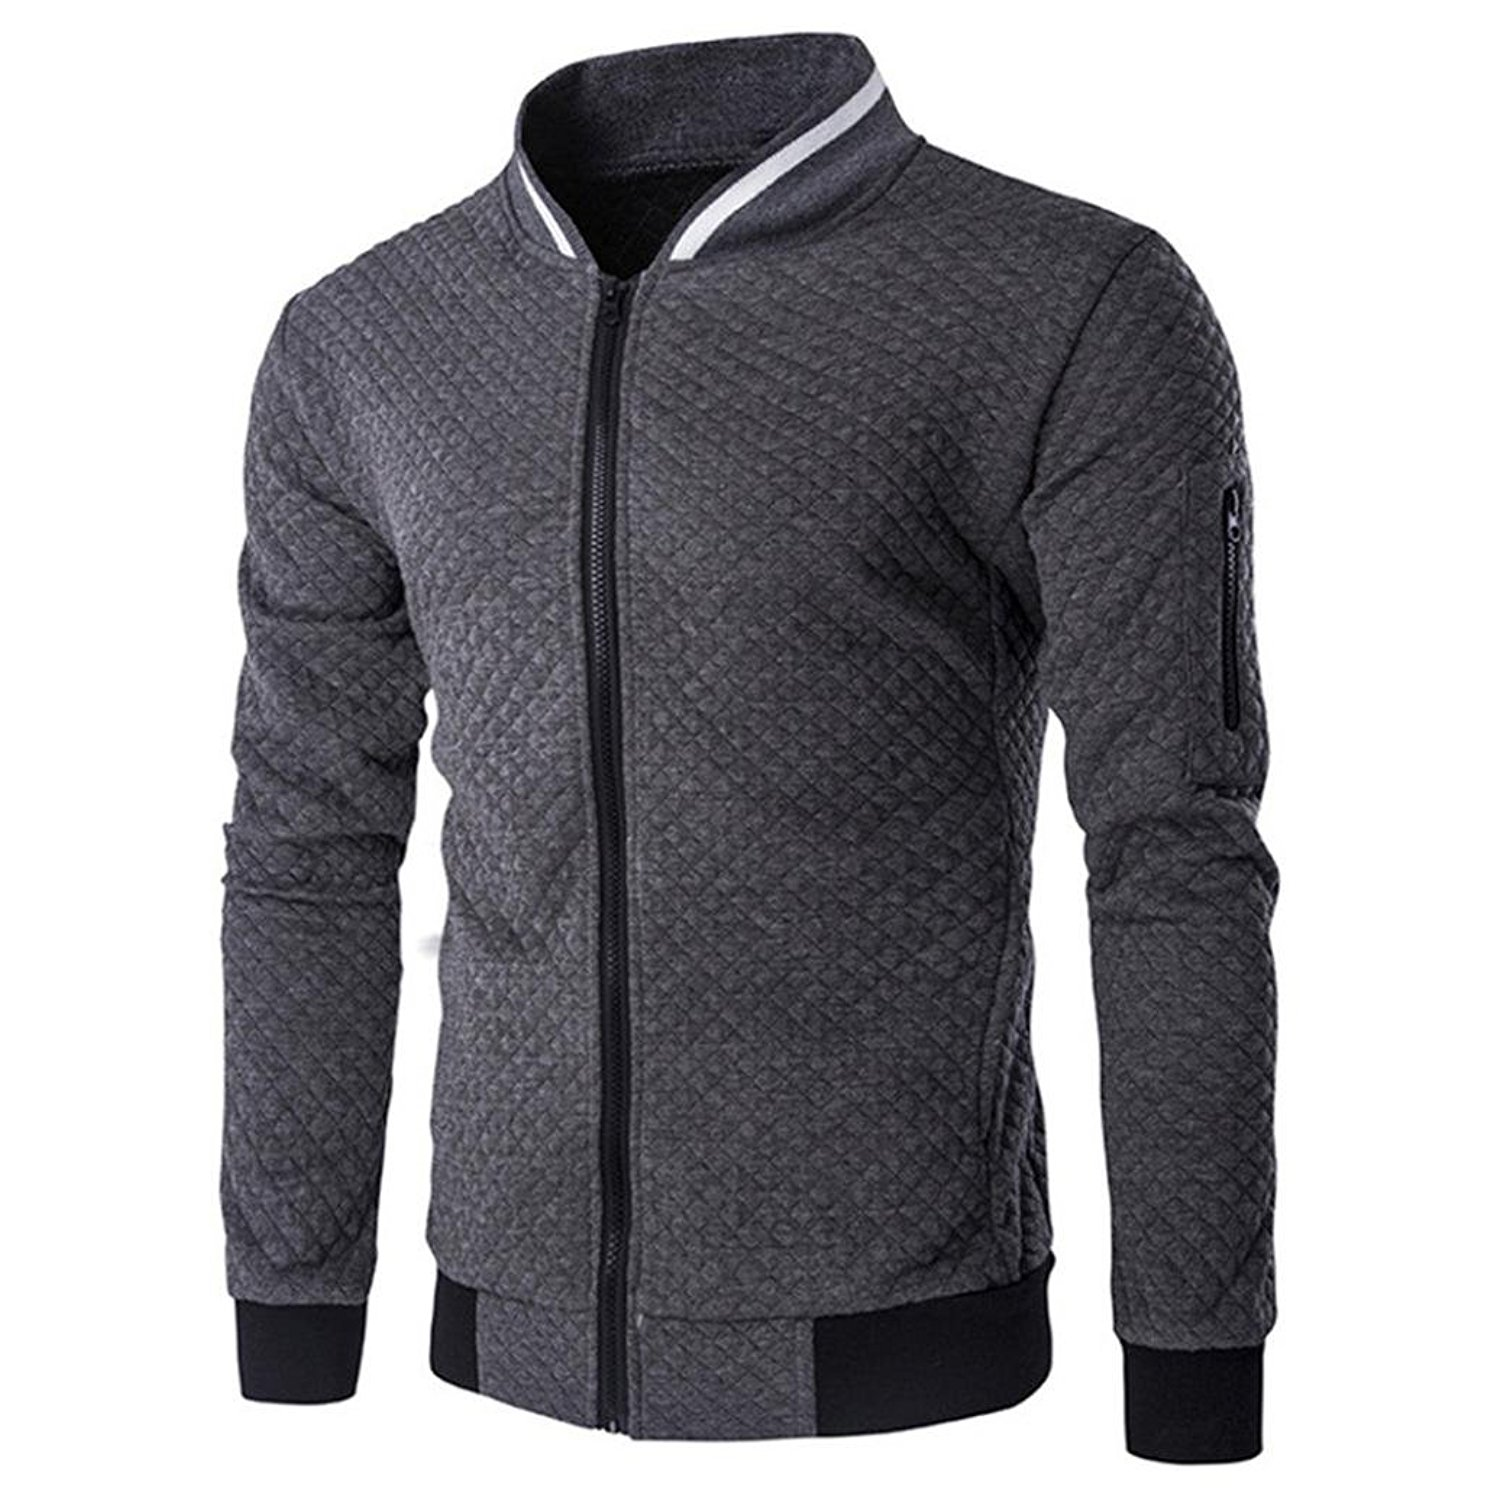 HTHJSCO Tops Jacket Coat, Mens Casual Soft Lightweight Zip up Baseball Collar Bomber Jacket with Diamond Plaid